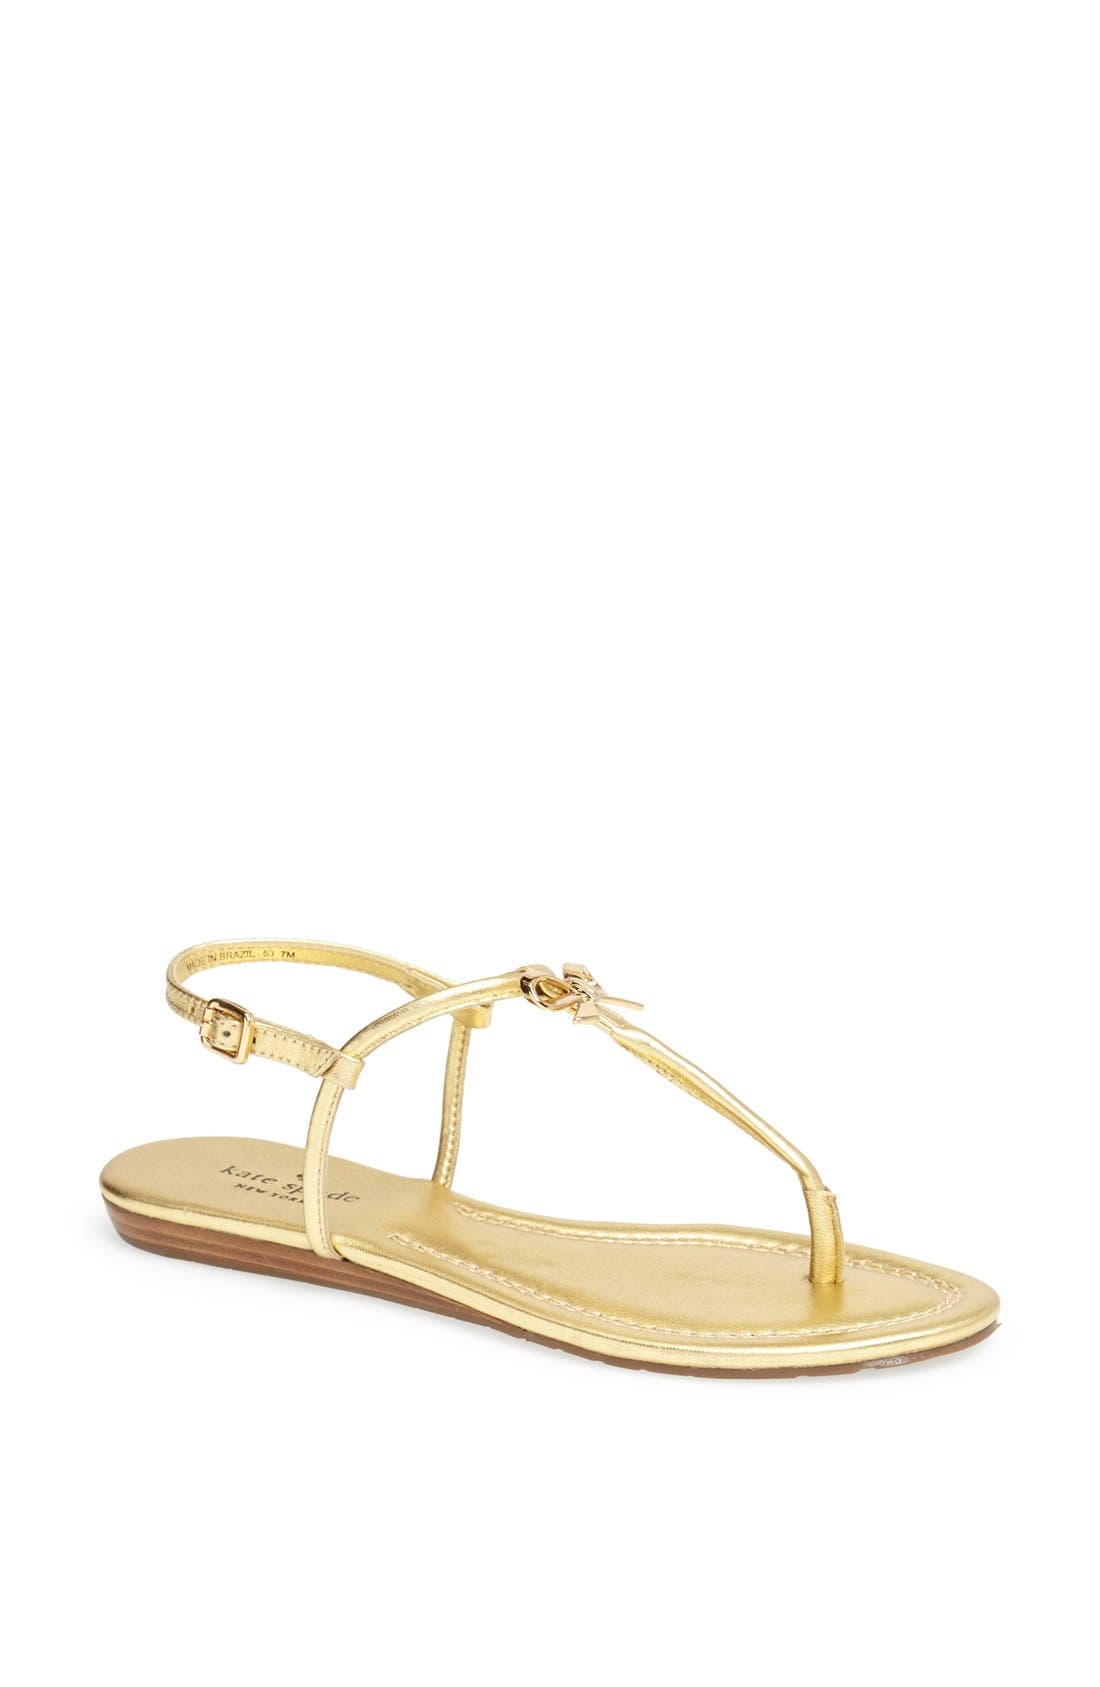 Alternate Image 1 Selected - kate spade new york 'tracie' sandal